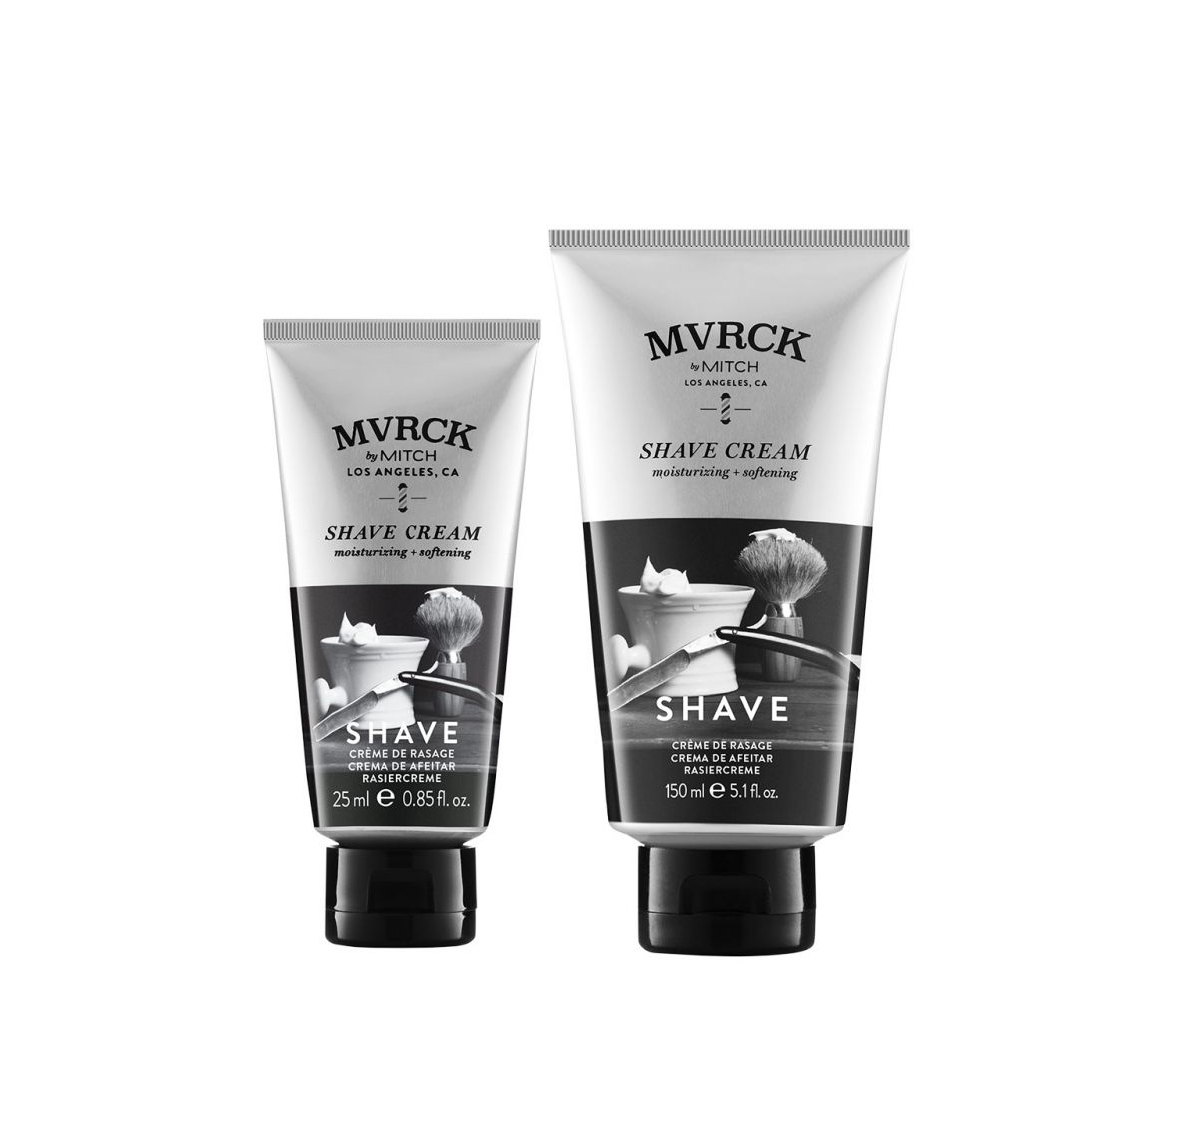 Paul Mitchell MVRCK Shave Cream - krém na holení